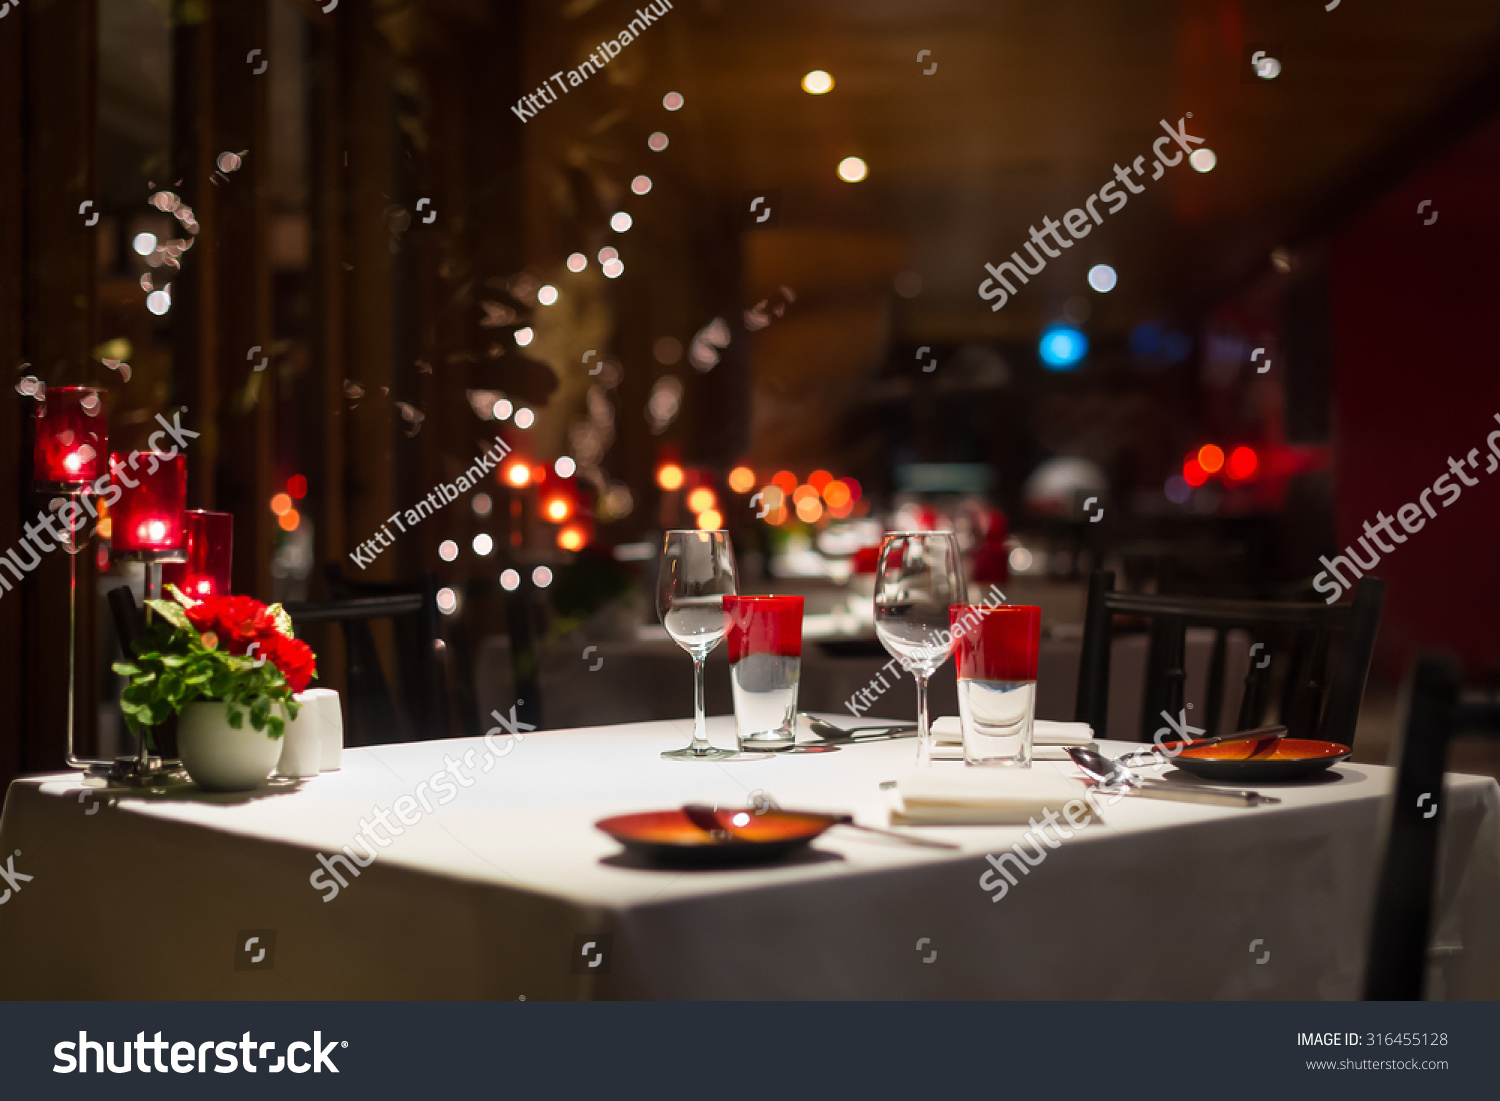 Romantic Dinner Setup Red Decoration Candle Stock Photo